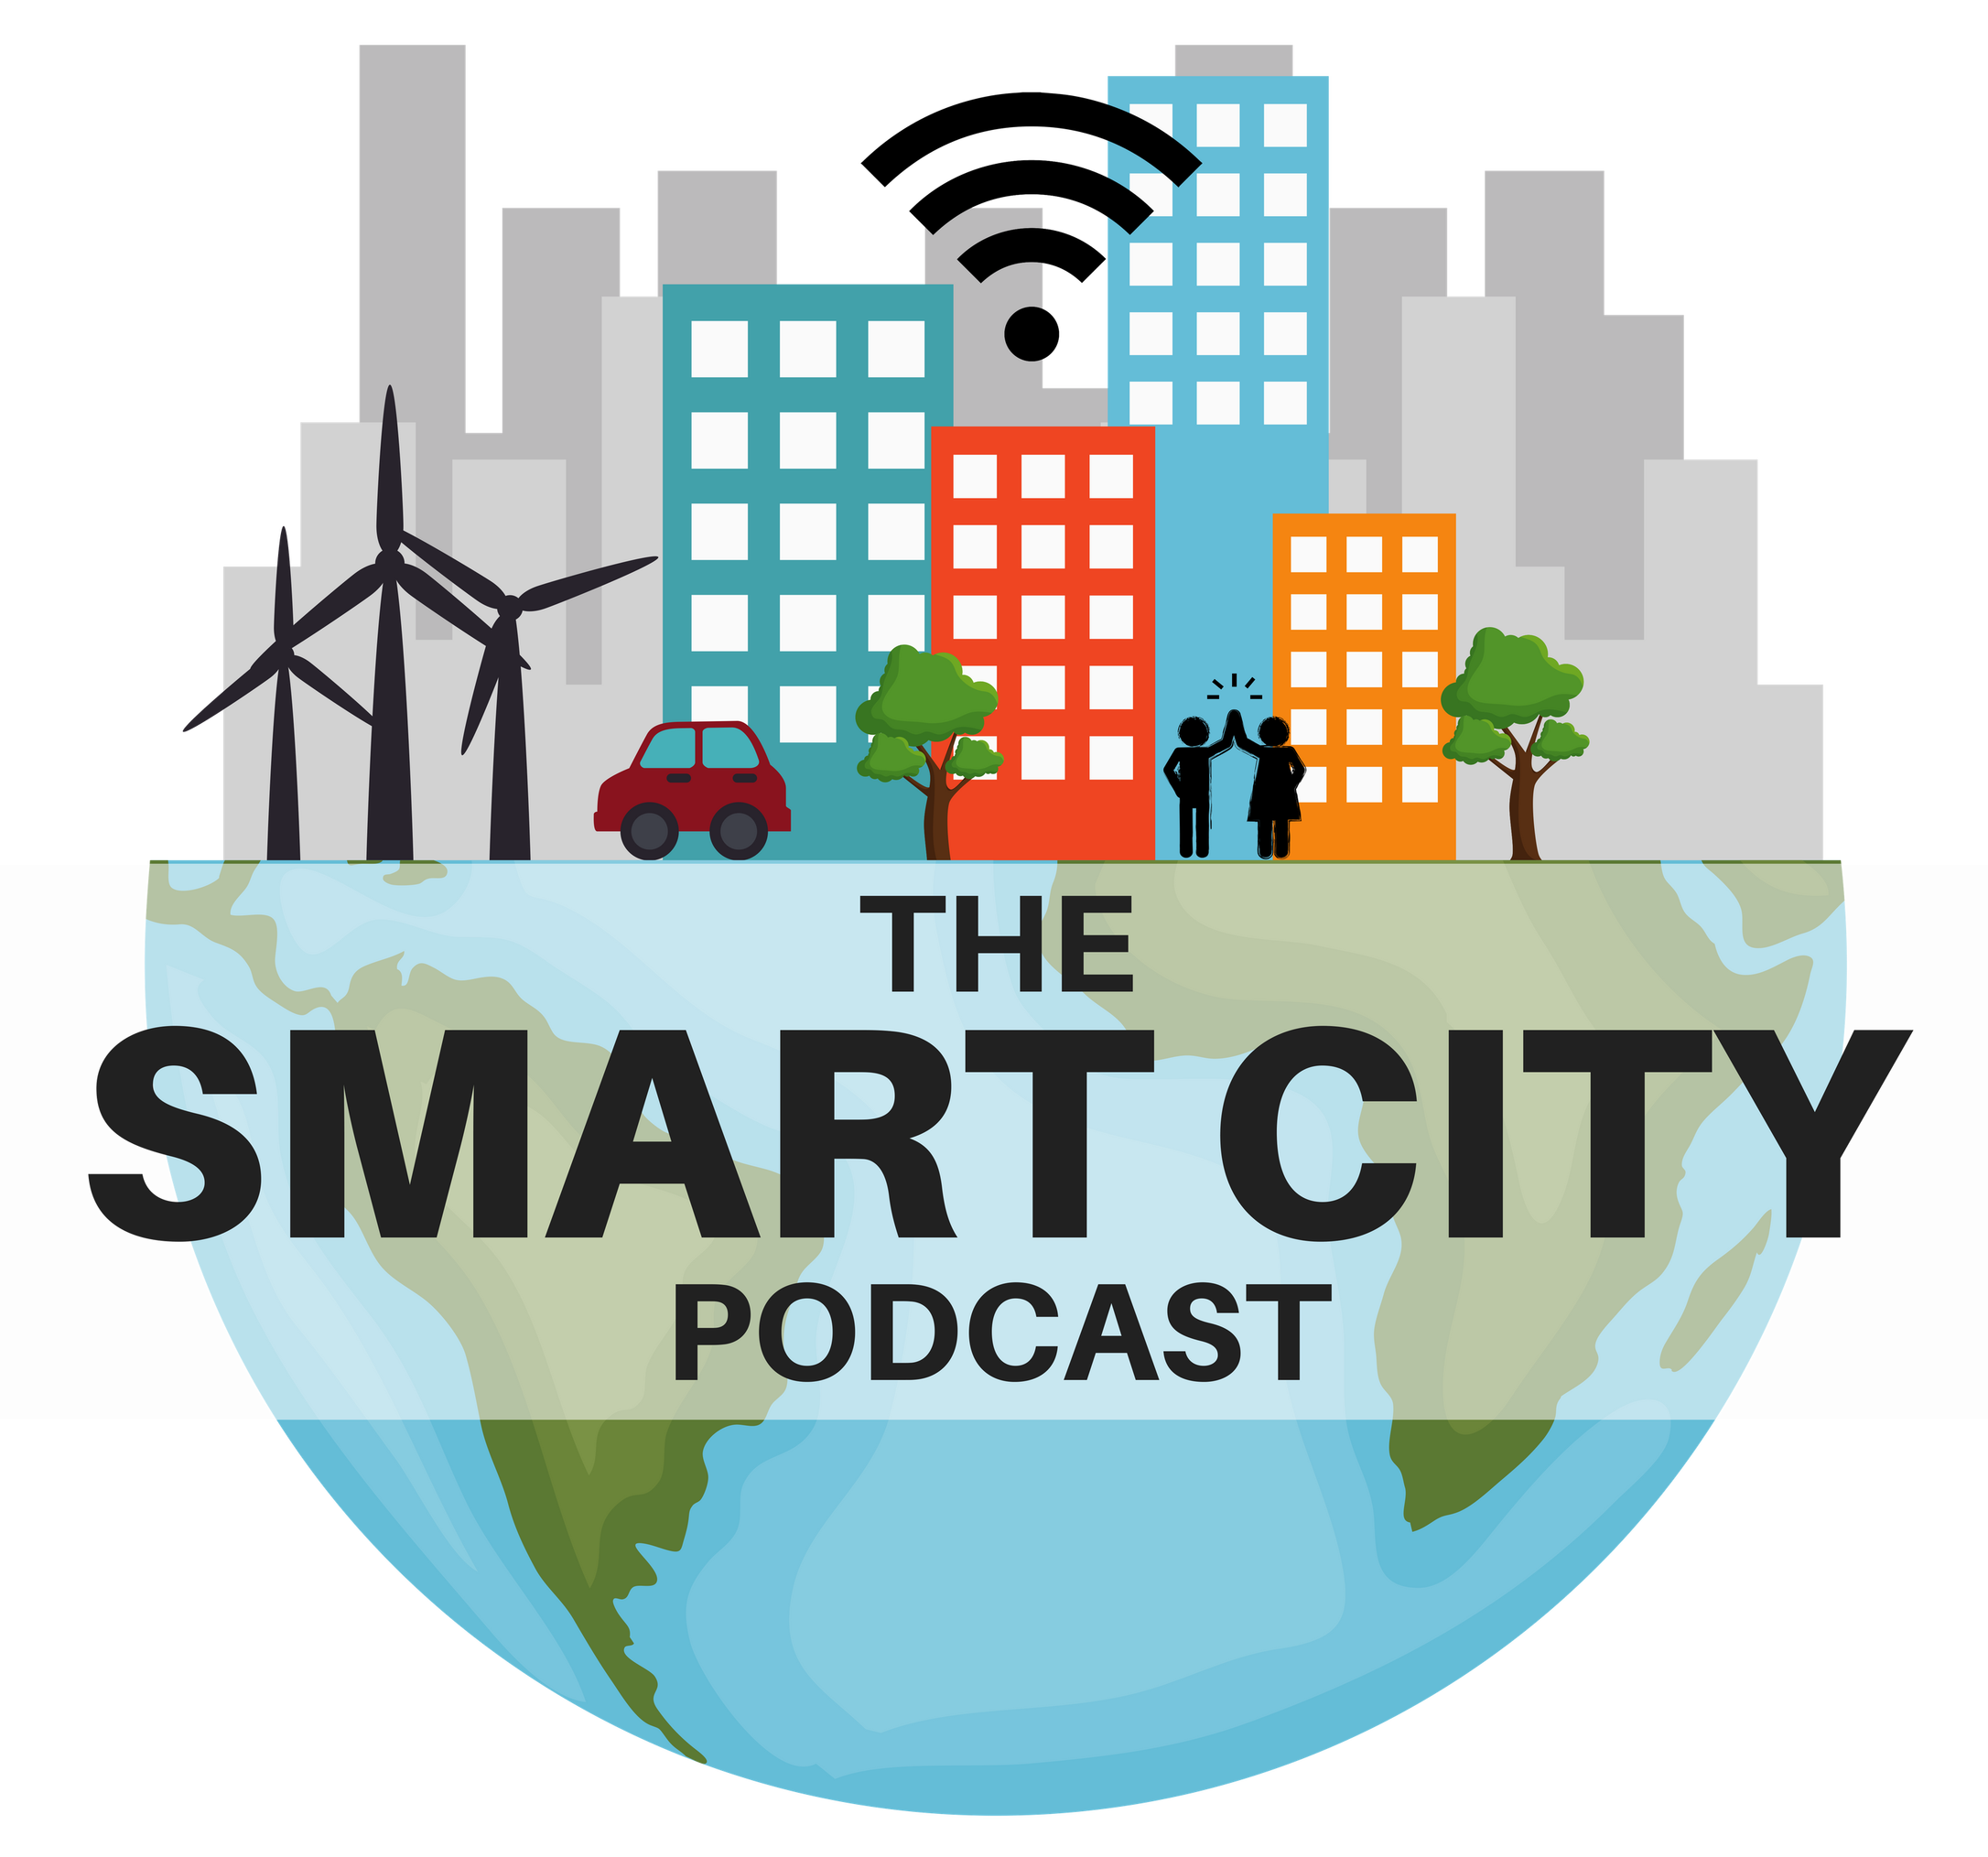 The Smart City Podcast - Dan Barr of the Better Cities Group joined Zoe Eather, Host of the Smart Cities podcast for a chat about the current state of smart cities and future trends. Listen here..